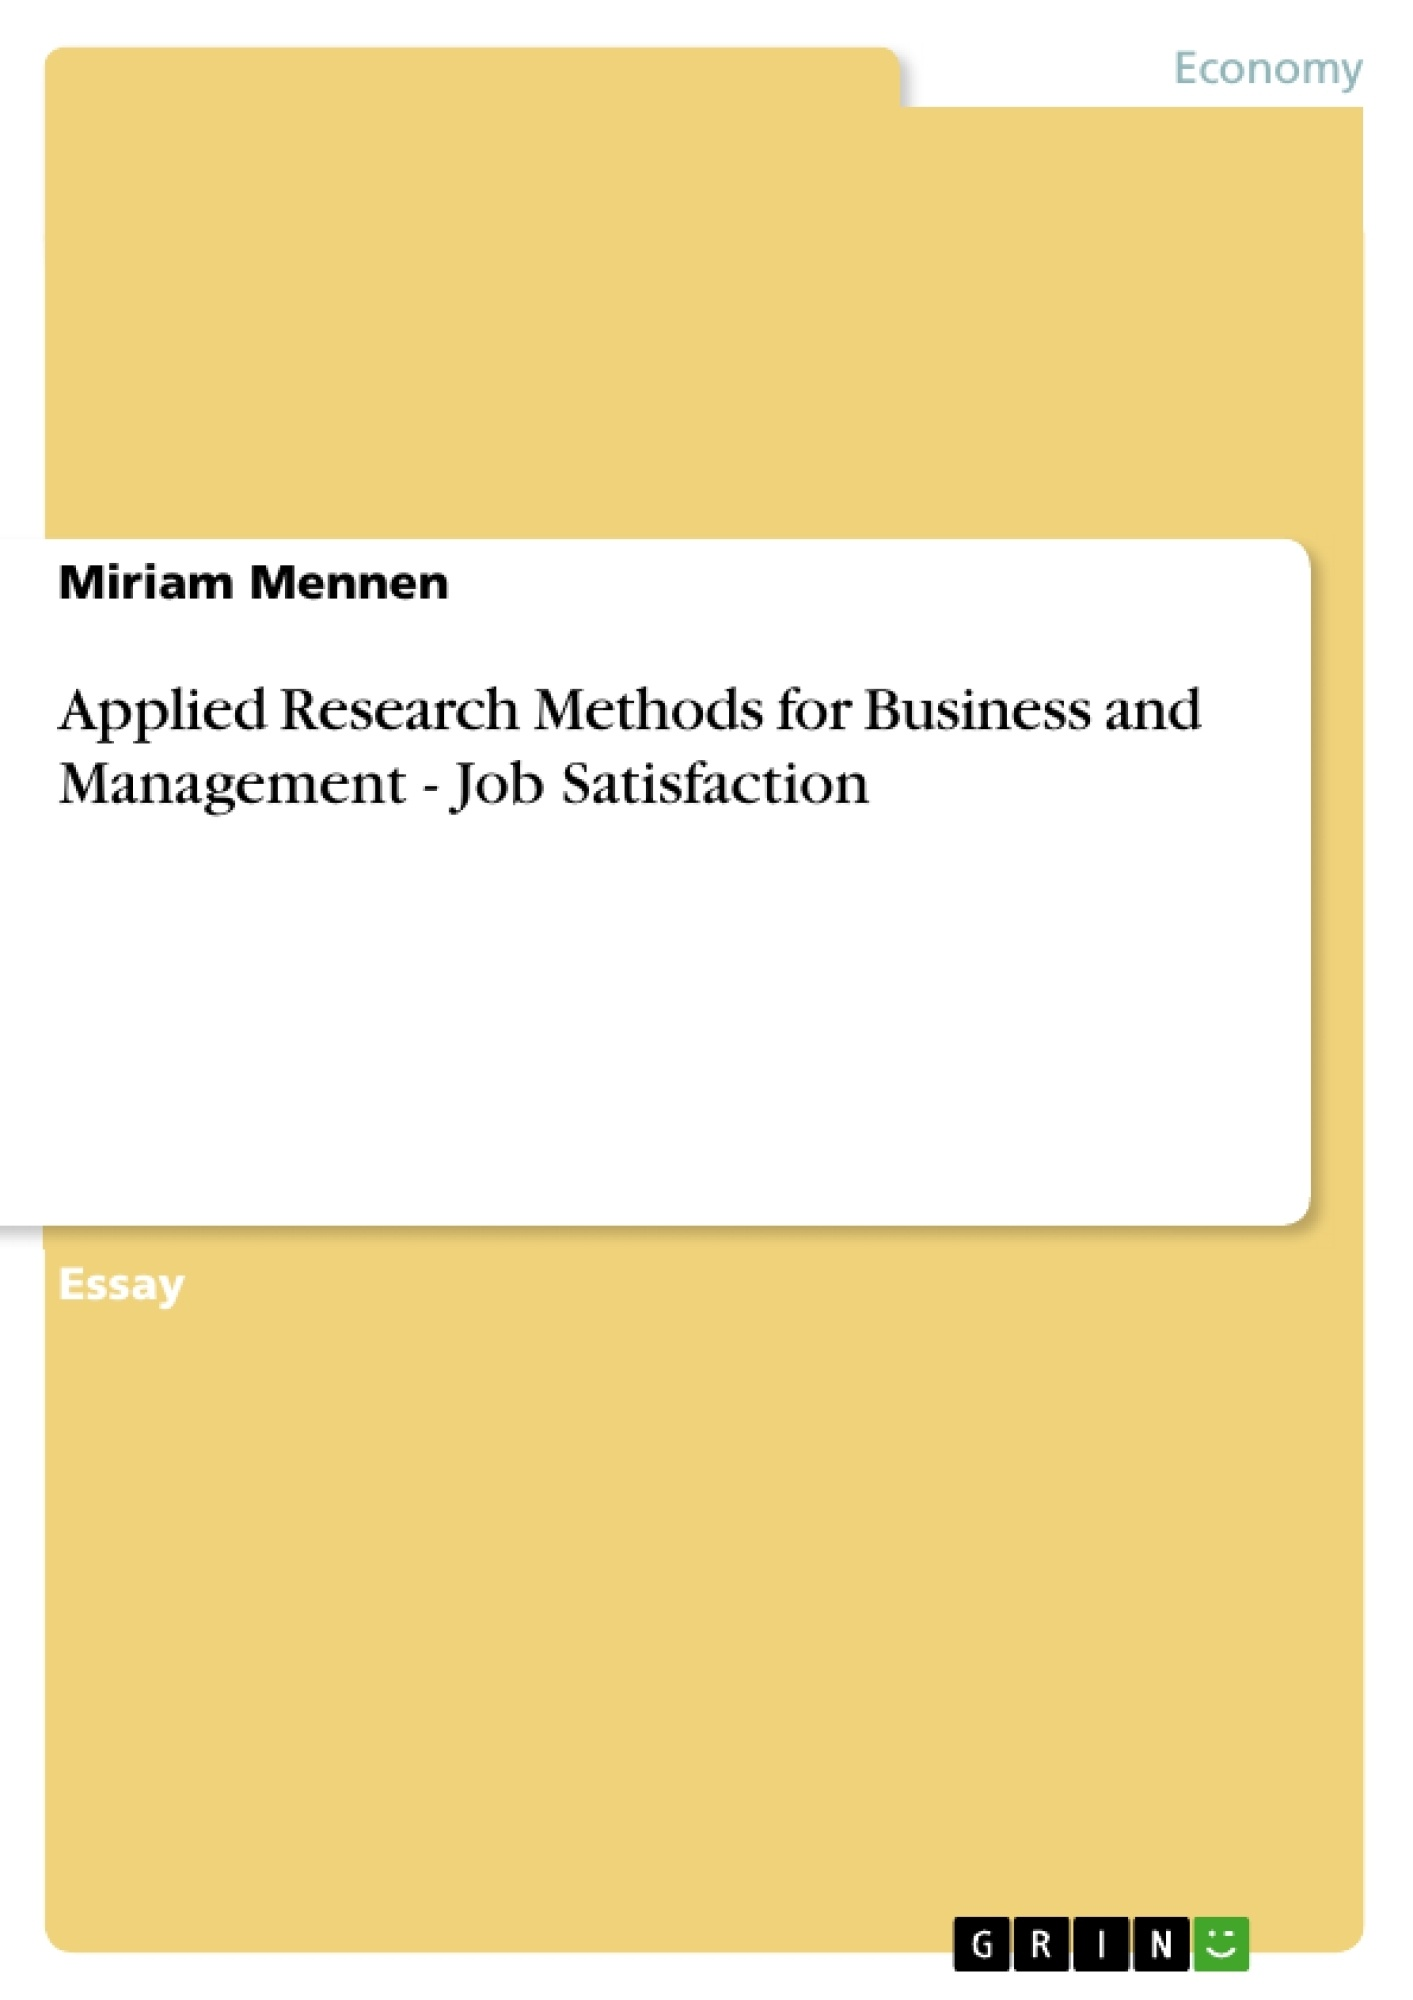 Essay On Business Management Applied Research Methods For Business